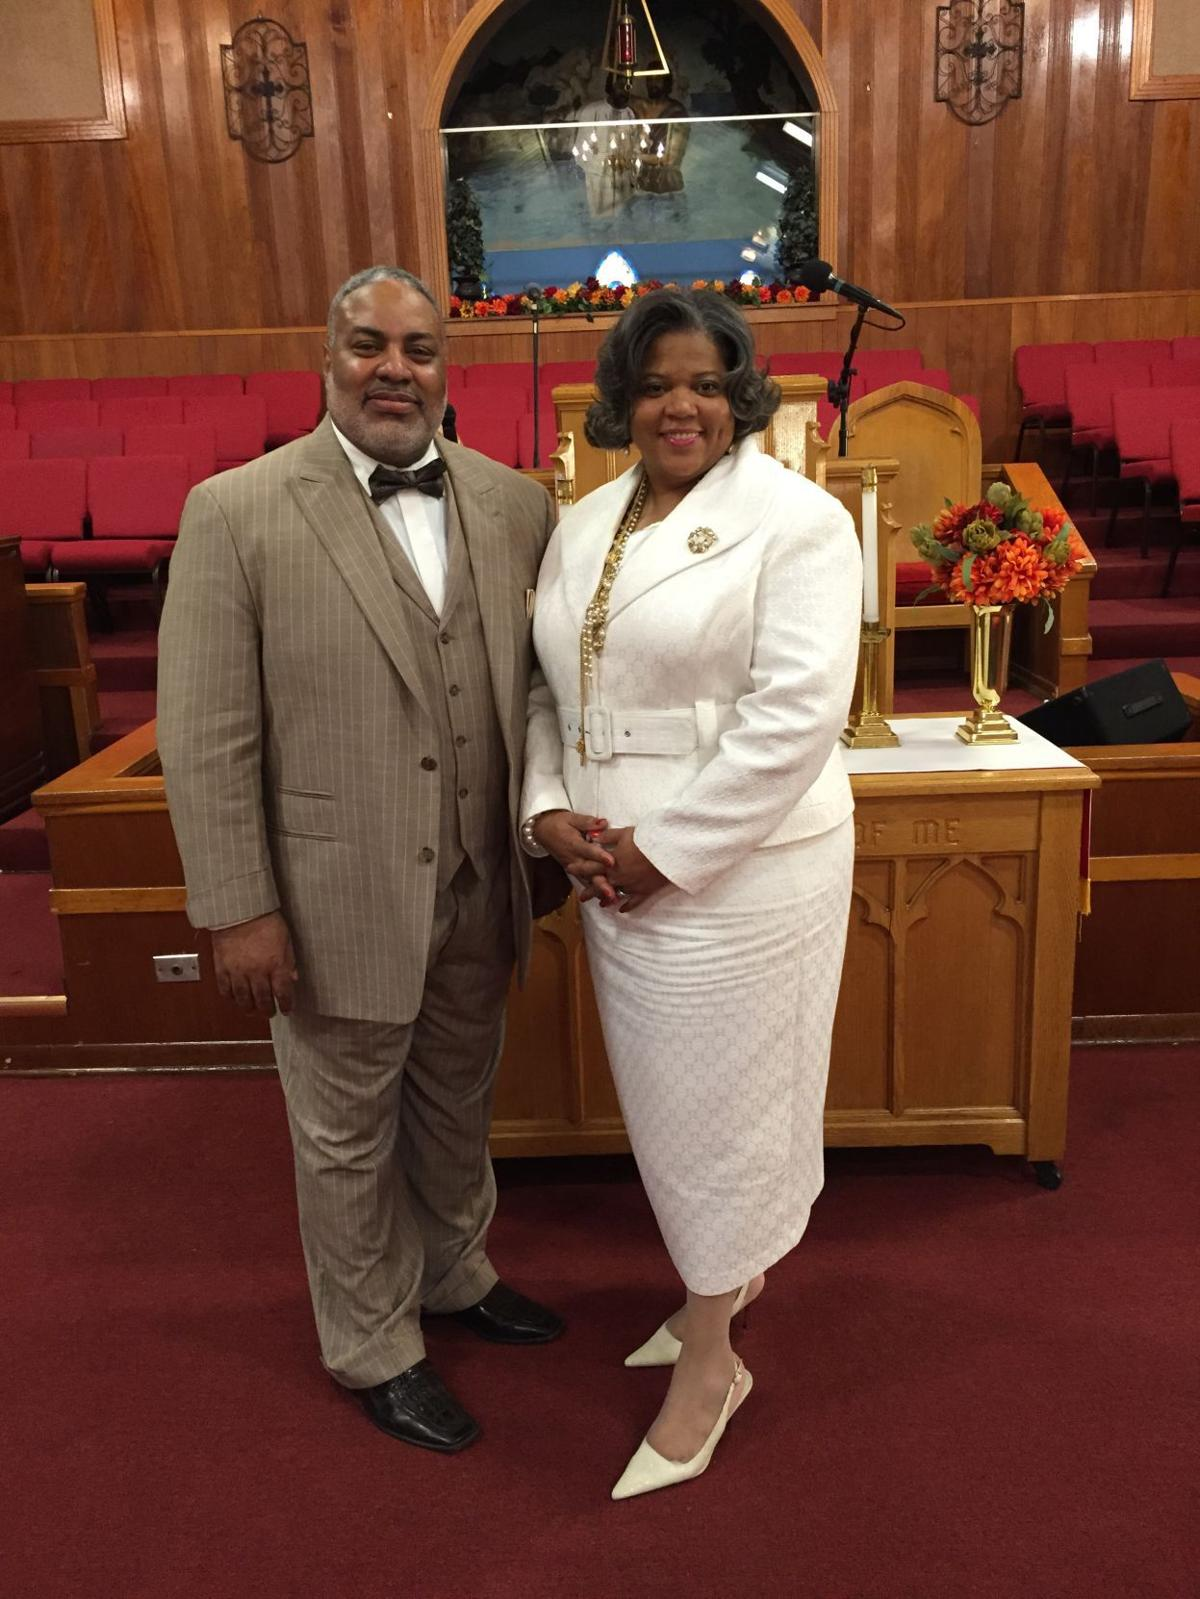 Van Buren Missionary Baptist Church celebrates 97 years